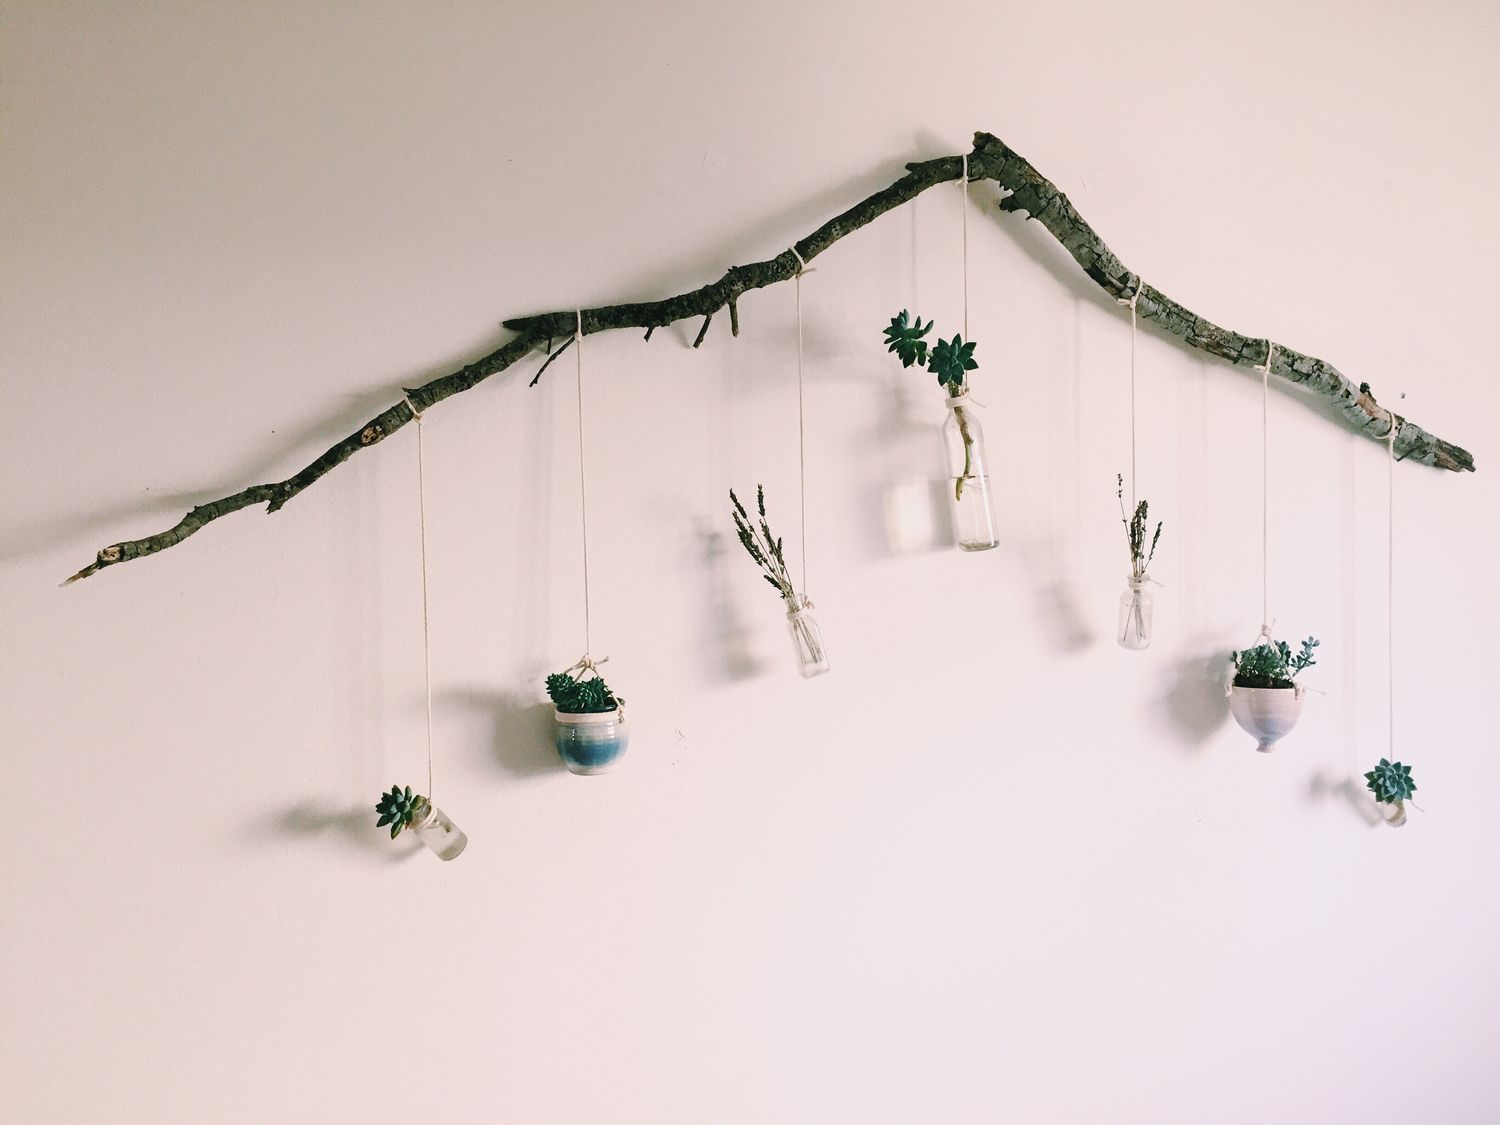 diy inspo: tree branch and macrame cord wall hanging using, succulents, lavender and small glass bottles